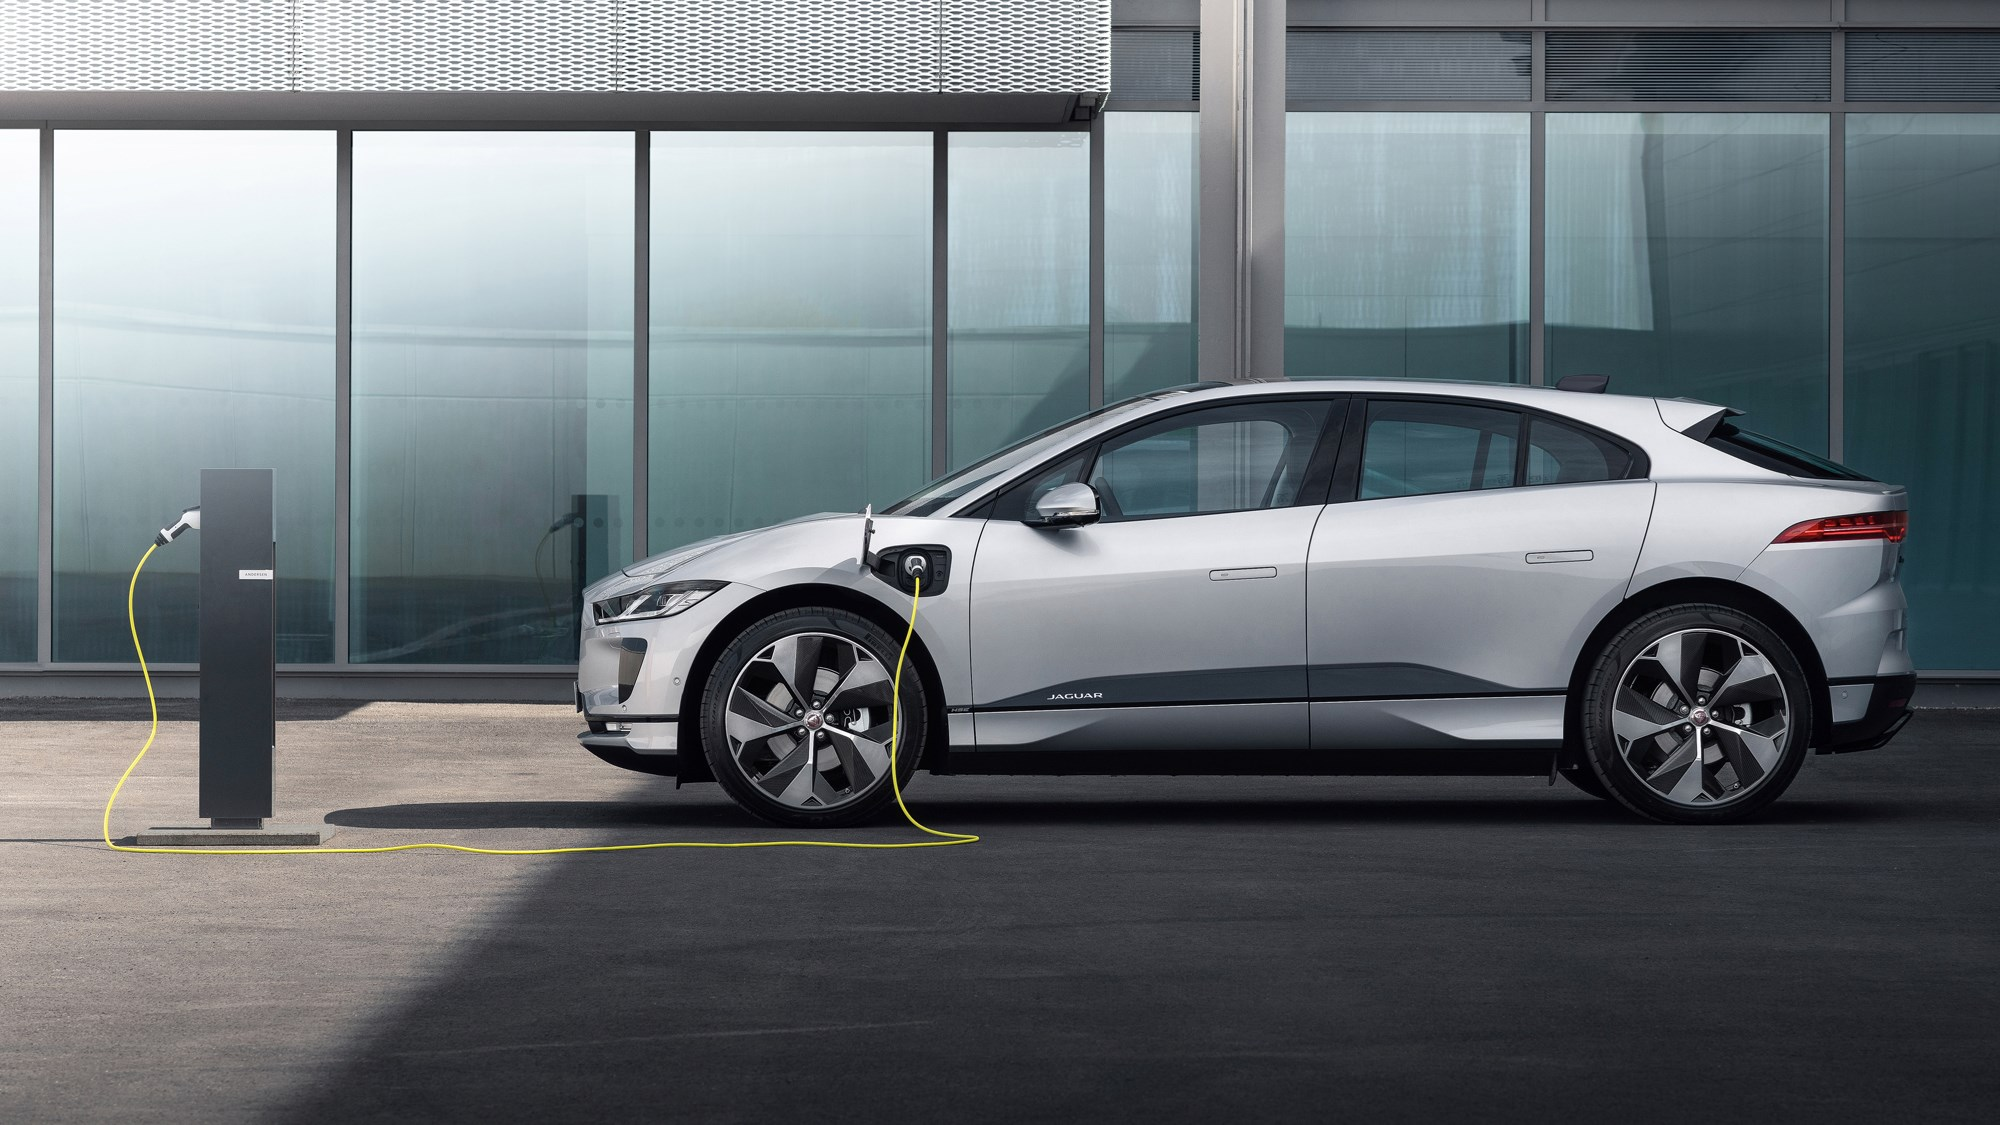 Silver 2020 Jaguar i-Pace side elevation on charge